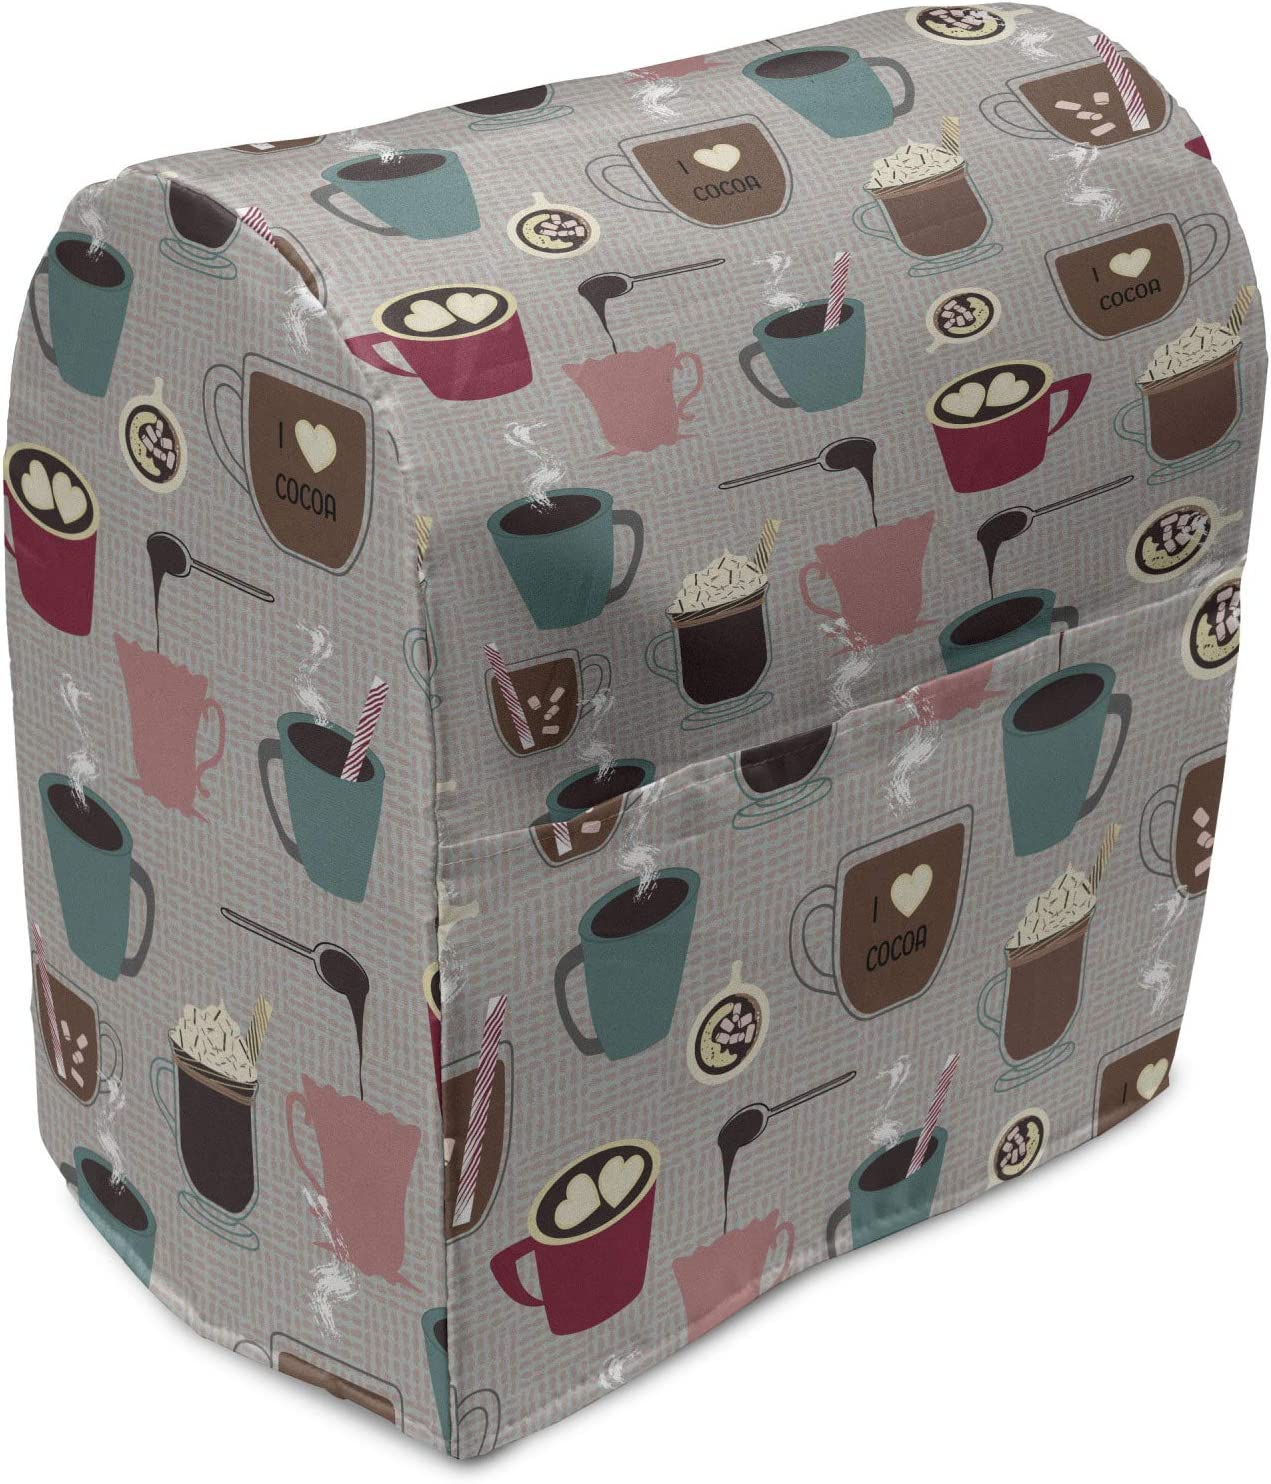 famous 70% OFF Outlet Lunarable Coffee Stand Mixer Cover I Love Theme Mocha Cocoa Cup